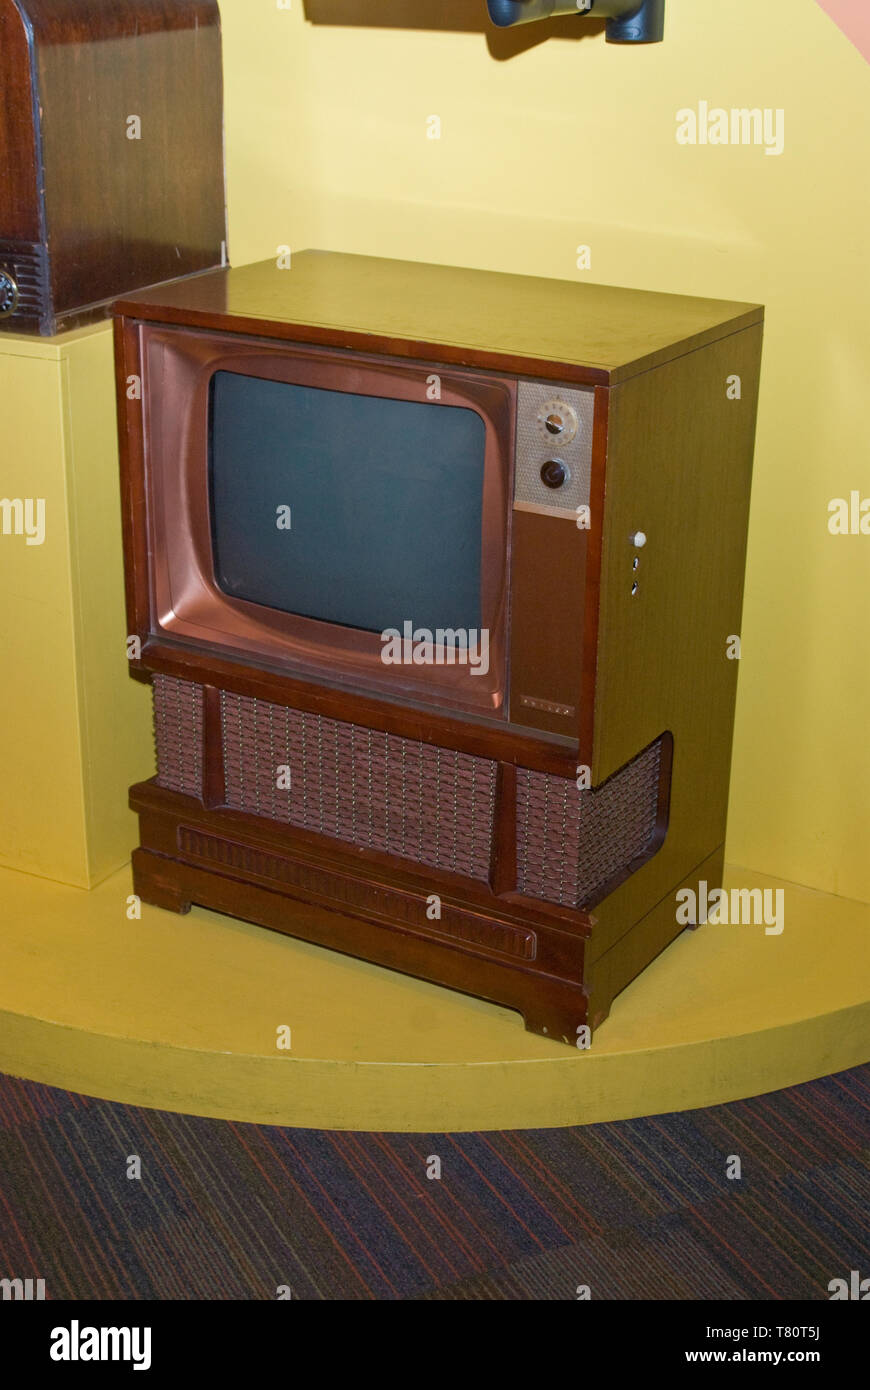 1950s Television Cabinet Stock Photos U0026 1950s Television ...